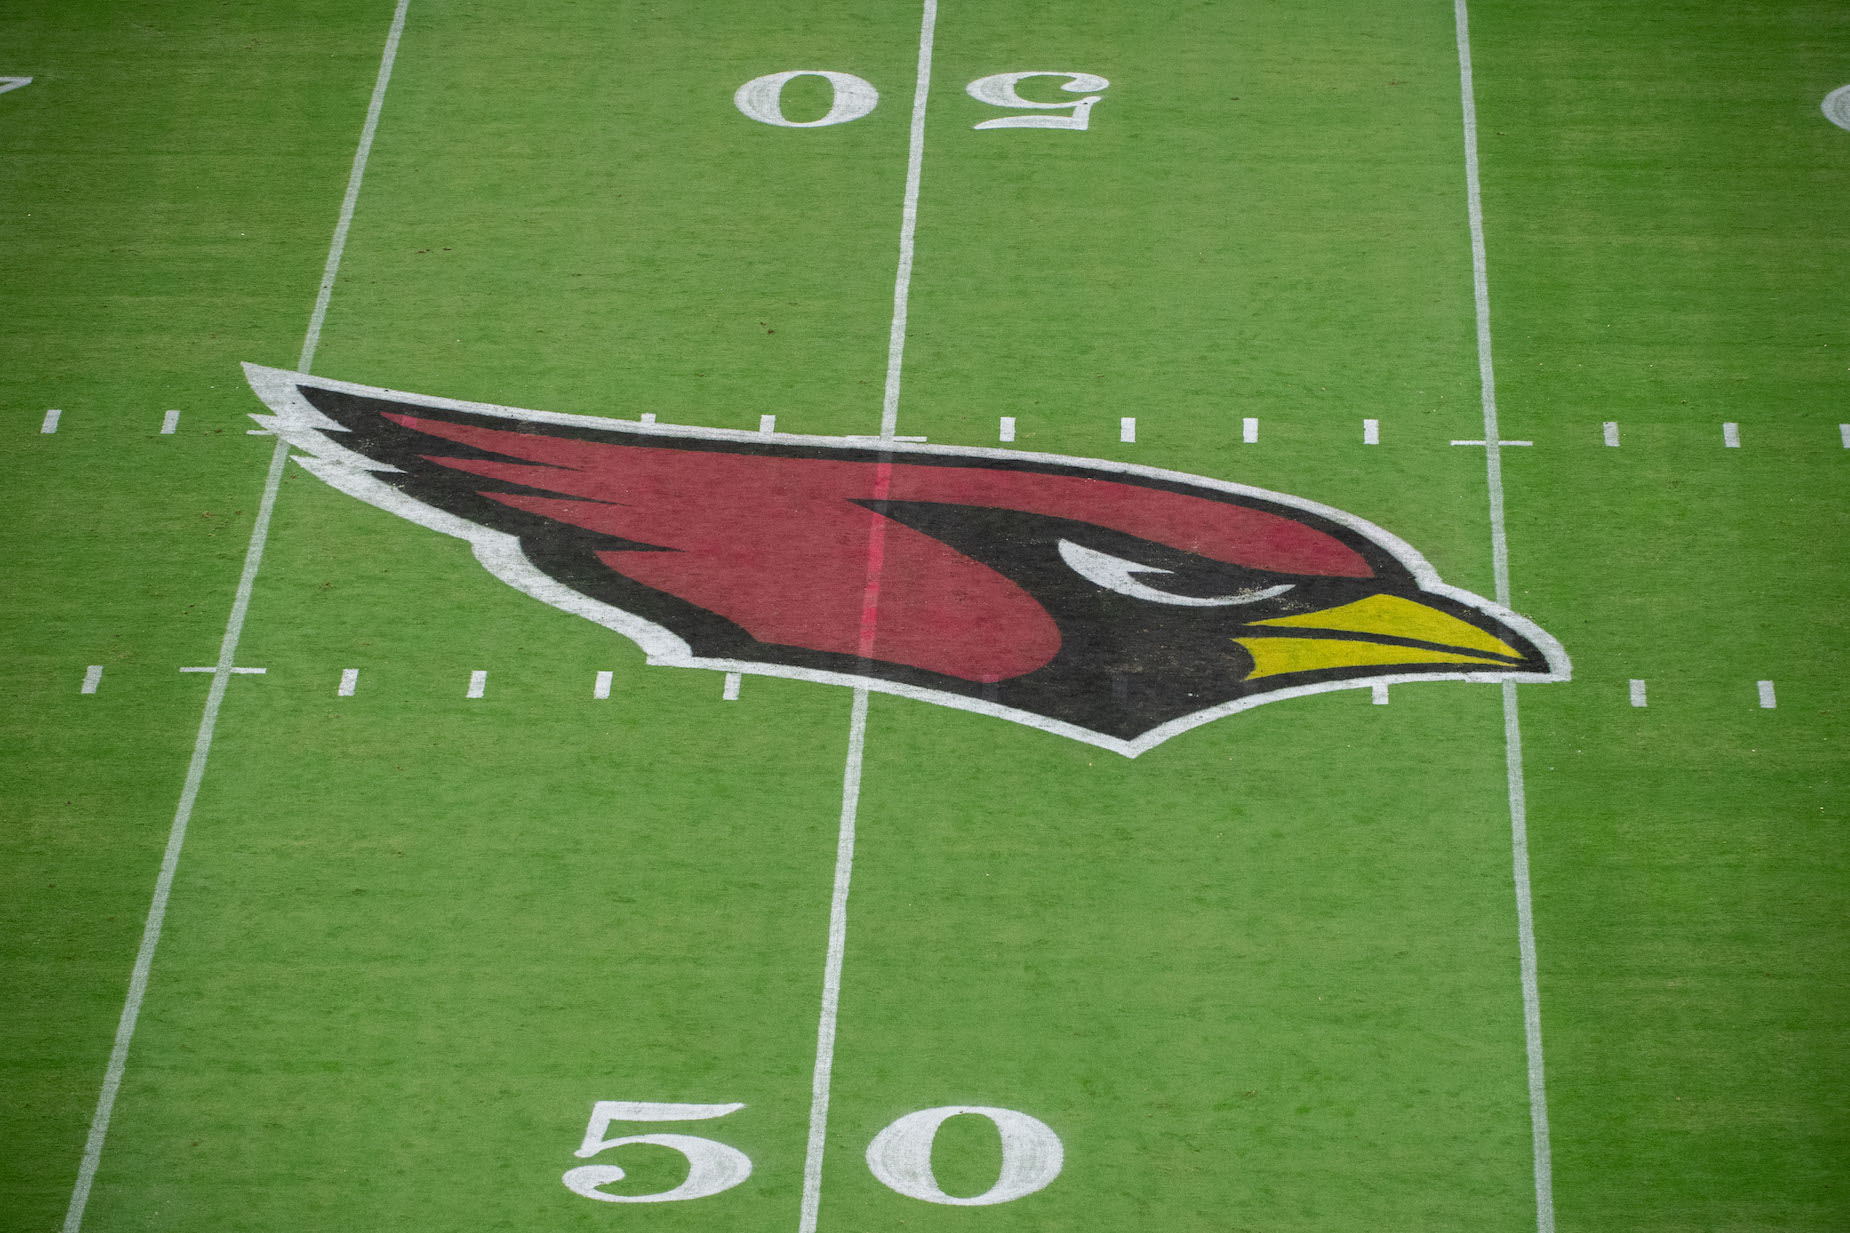 The on-field logo of the Arizona Cardinals, who recently landed J.J. Watt in free agency.